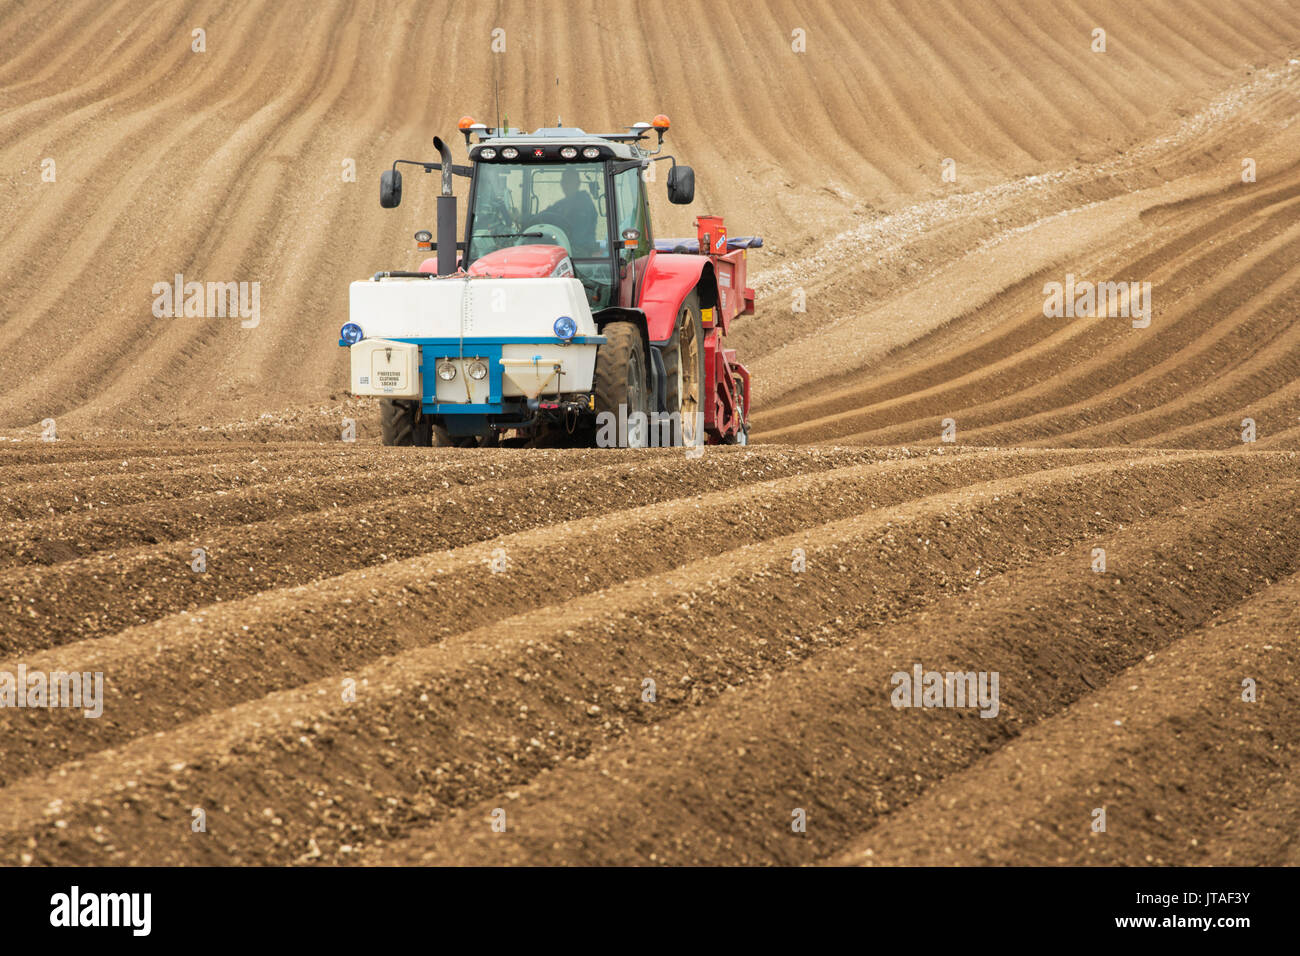 Farmer ploughing and cultivating field for crops near Fridaythorpe, Yorkshire Wolds, East Yorkshire, England, United Kingdom - Stock Image